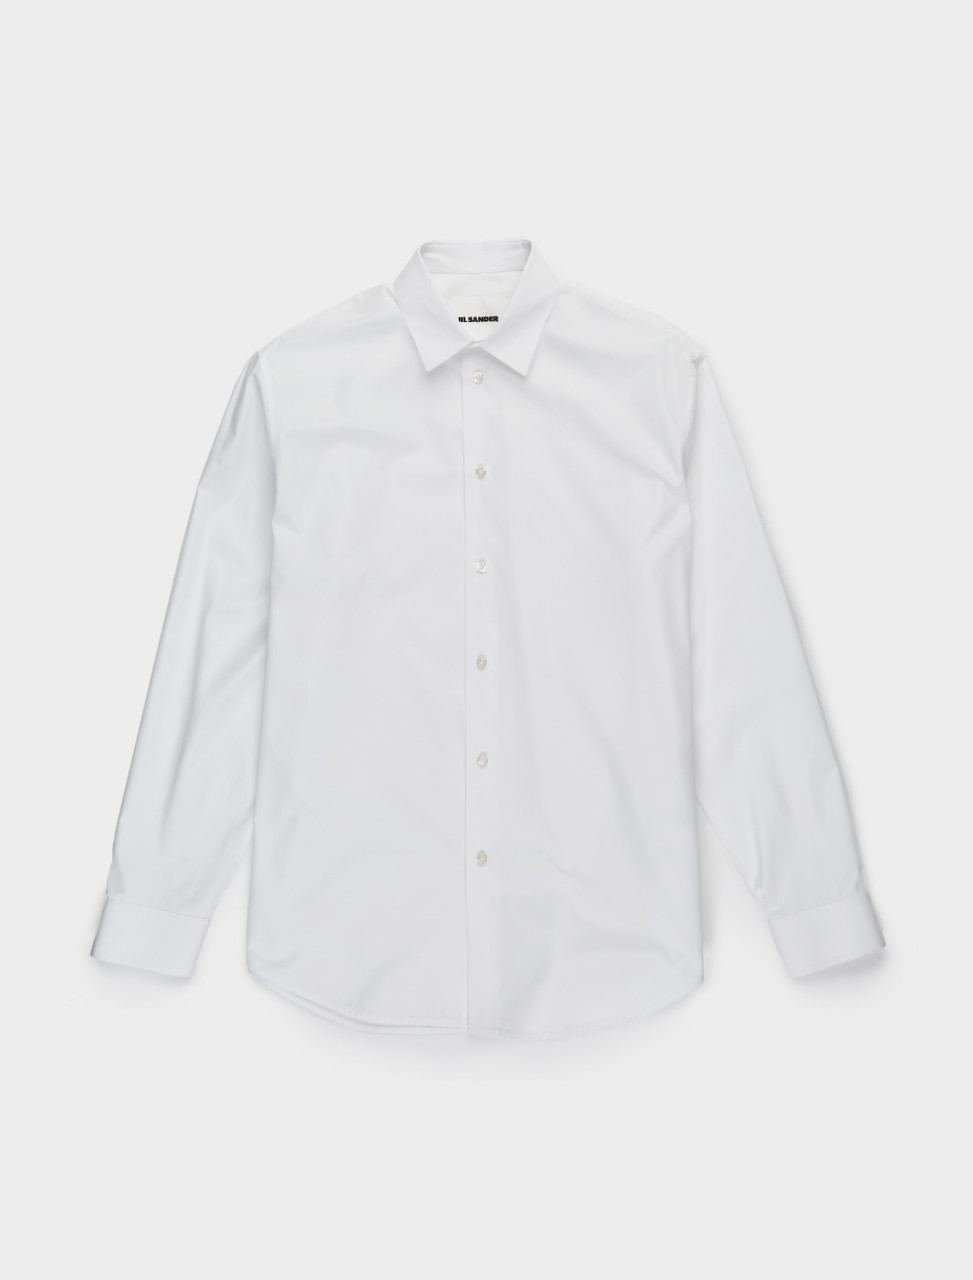 130-JSIR740226-MR244300-100 JIL SANDER ESSENTIAL SHIRT WHITE FRONT